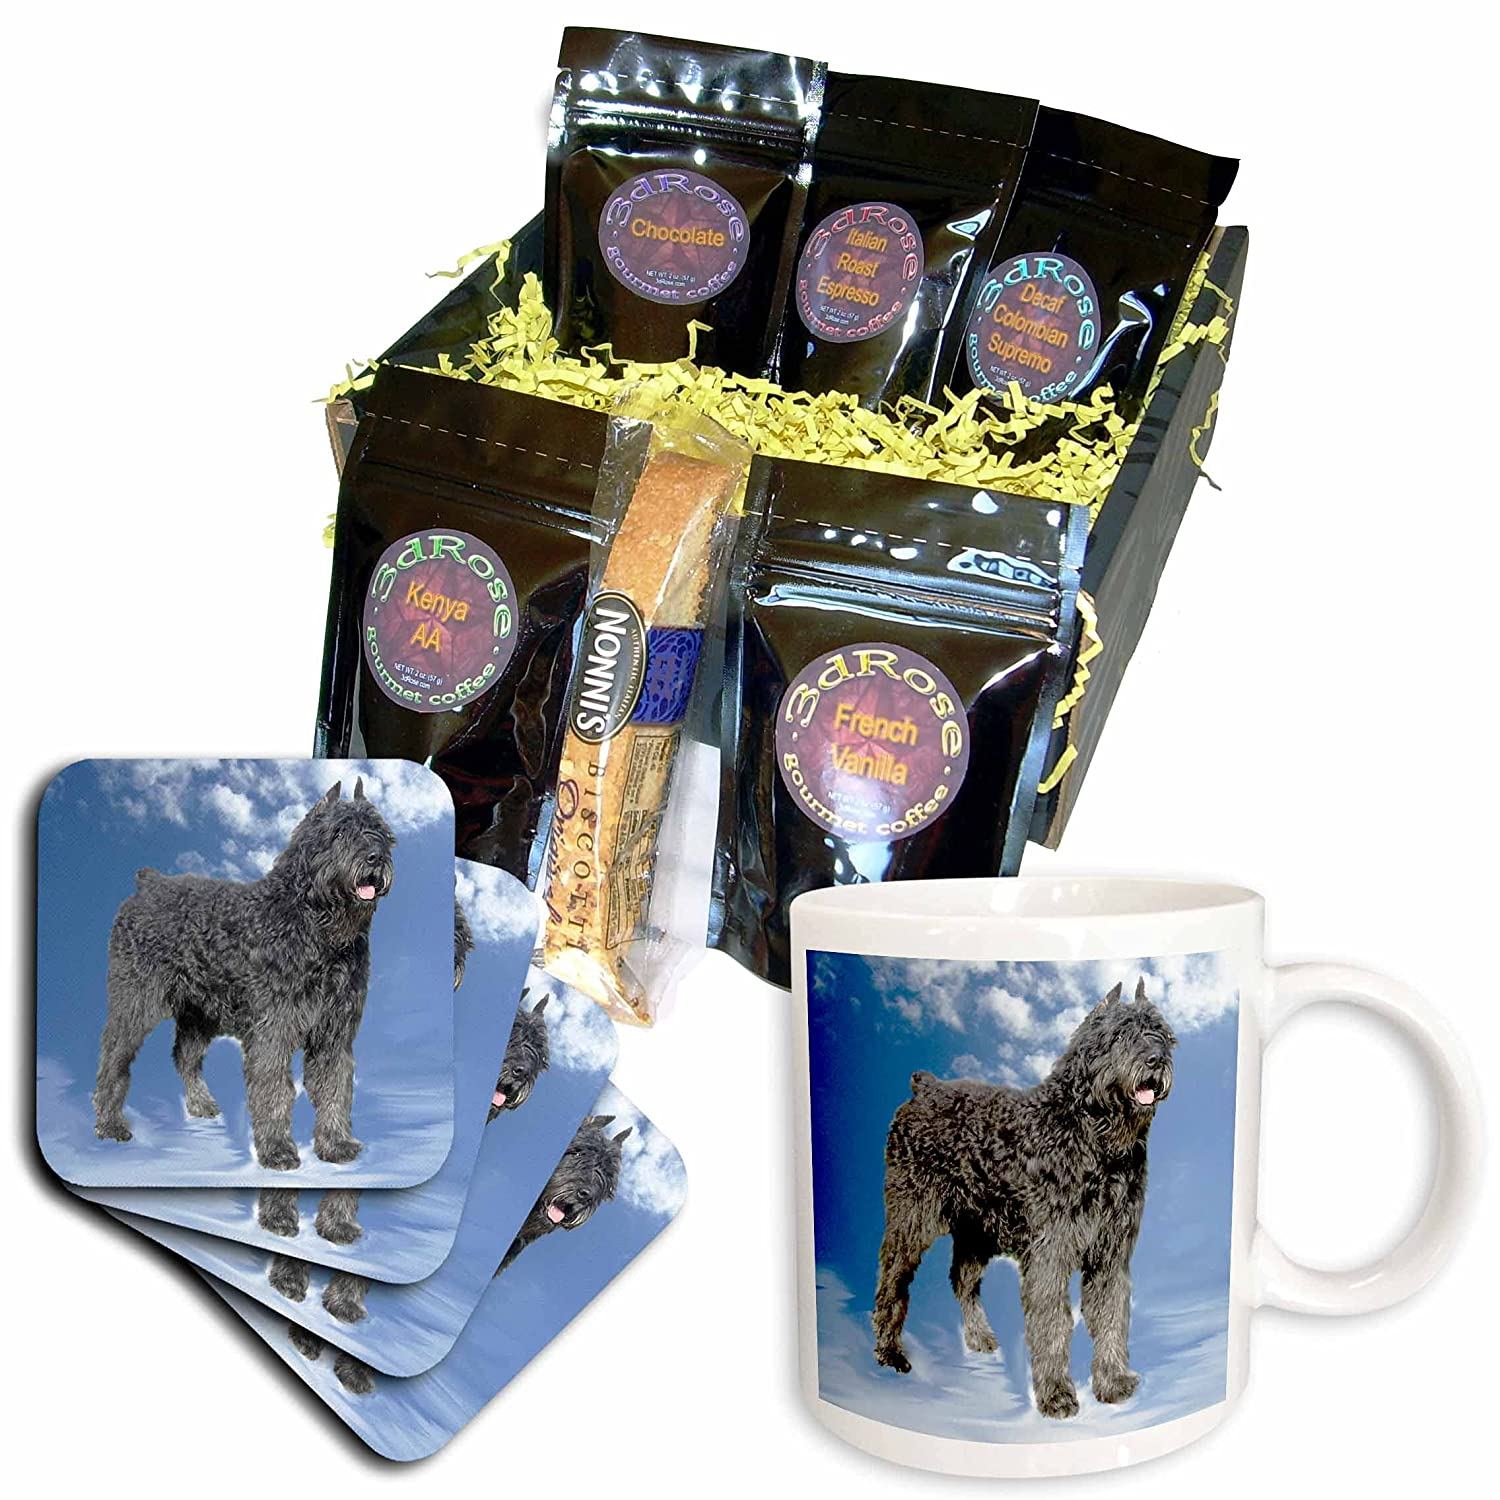 3dRose Dogs Bouvier - A surprise price is realized Des 5 popular Gift Coffee Baskets Flandres